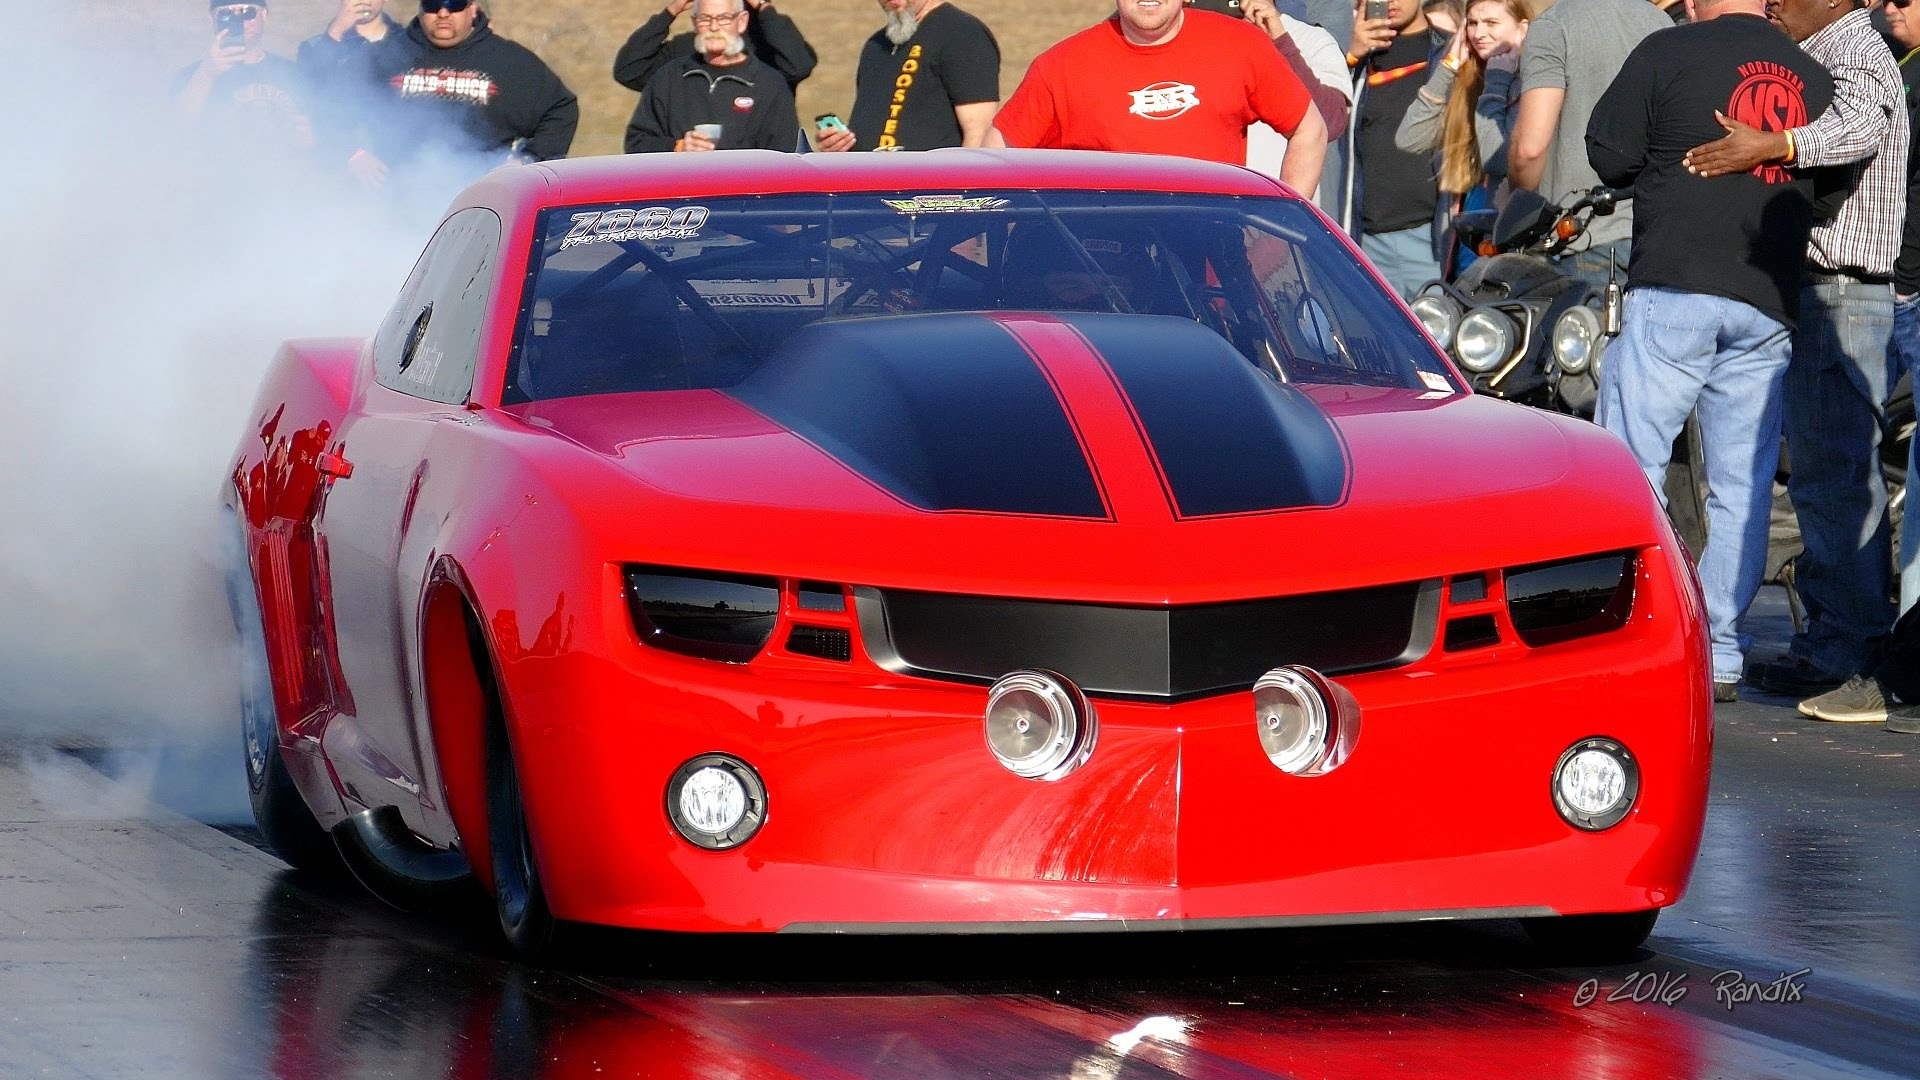 The 3500hp Firebal Drag Car Photo: youtube